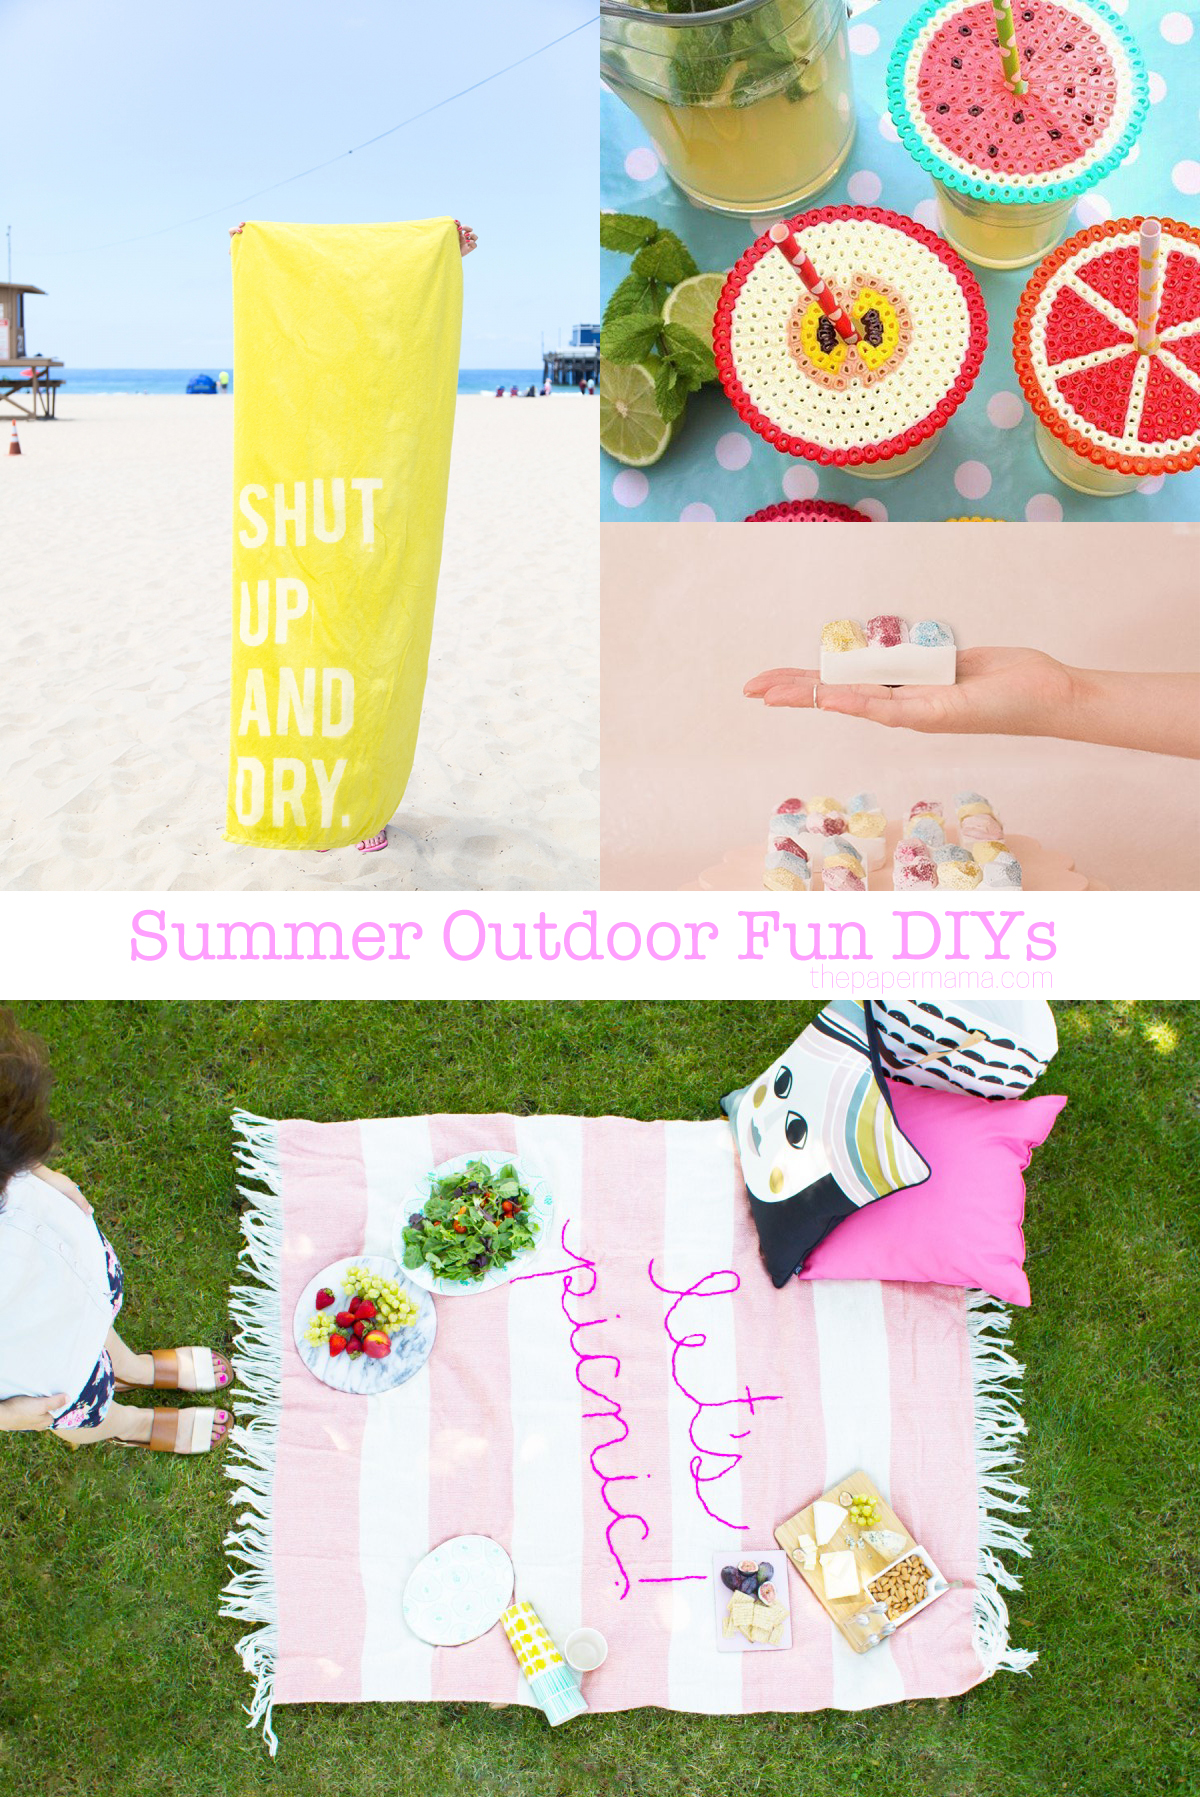 Summer Outdoor Fun DIYs